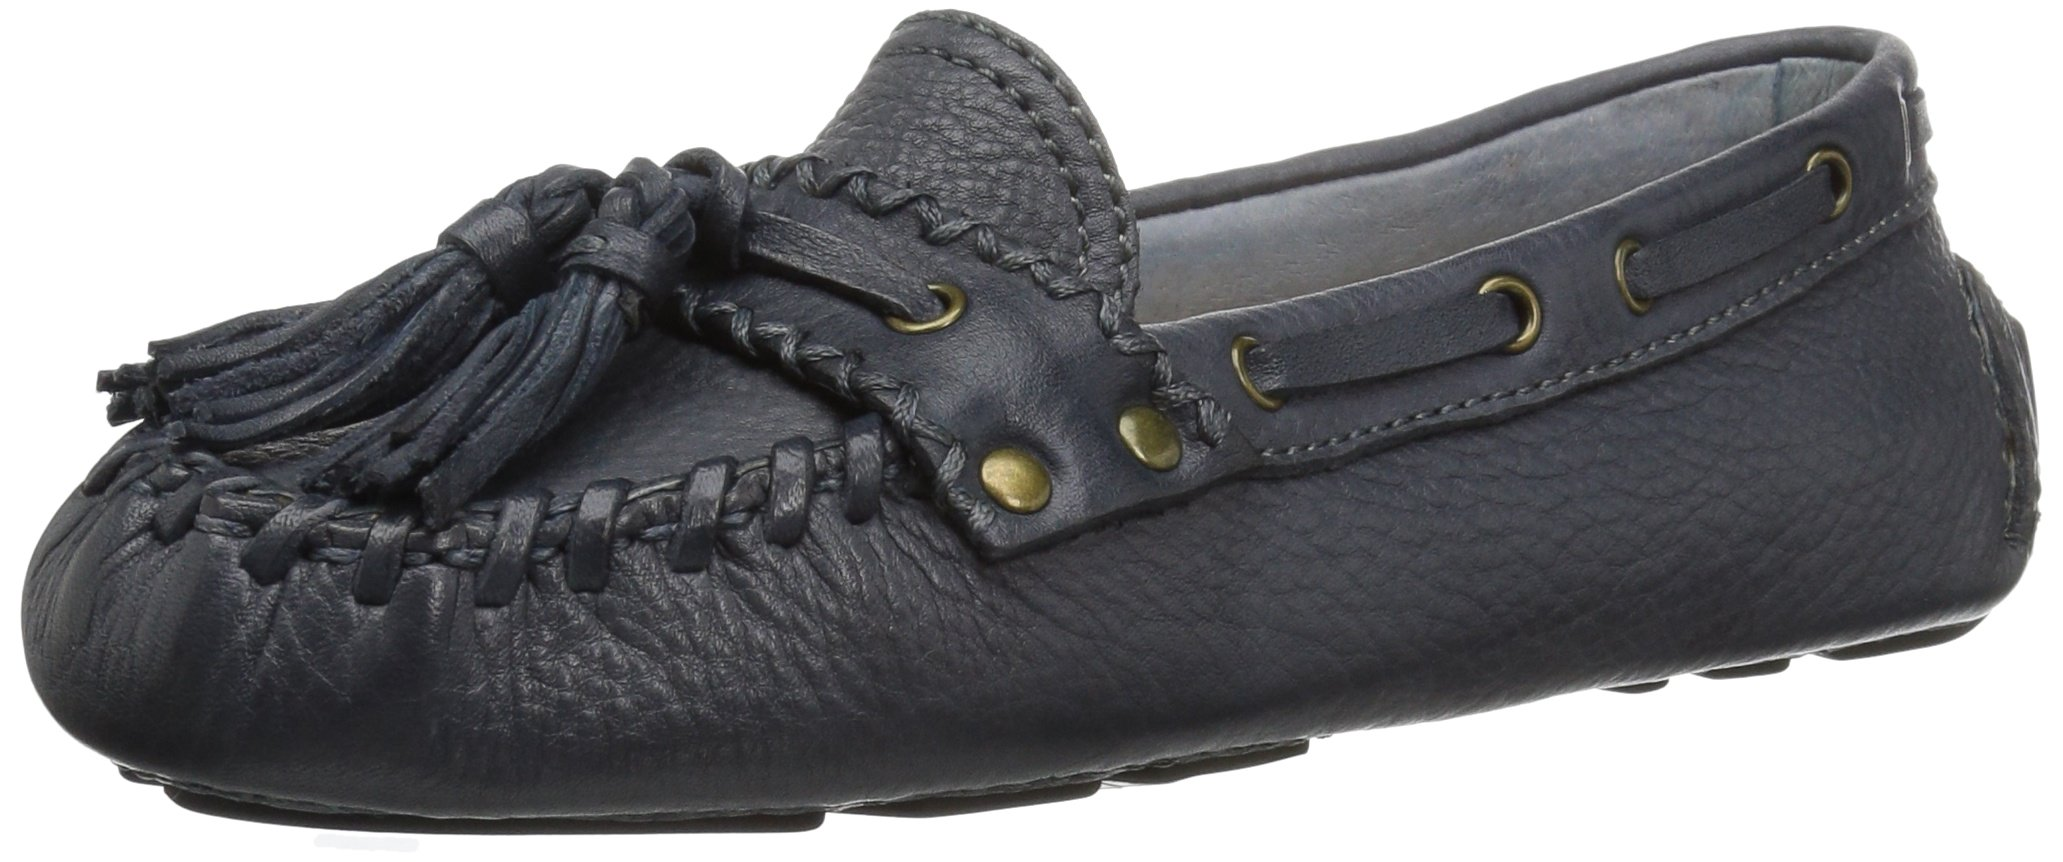 Patricia Nash Women's Domenica Driving Style Loafer, Oxford Blue, 37.5 B US by Patricia Nash (Image #1)